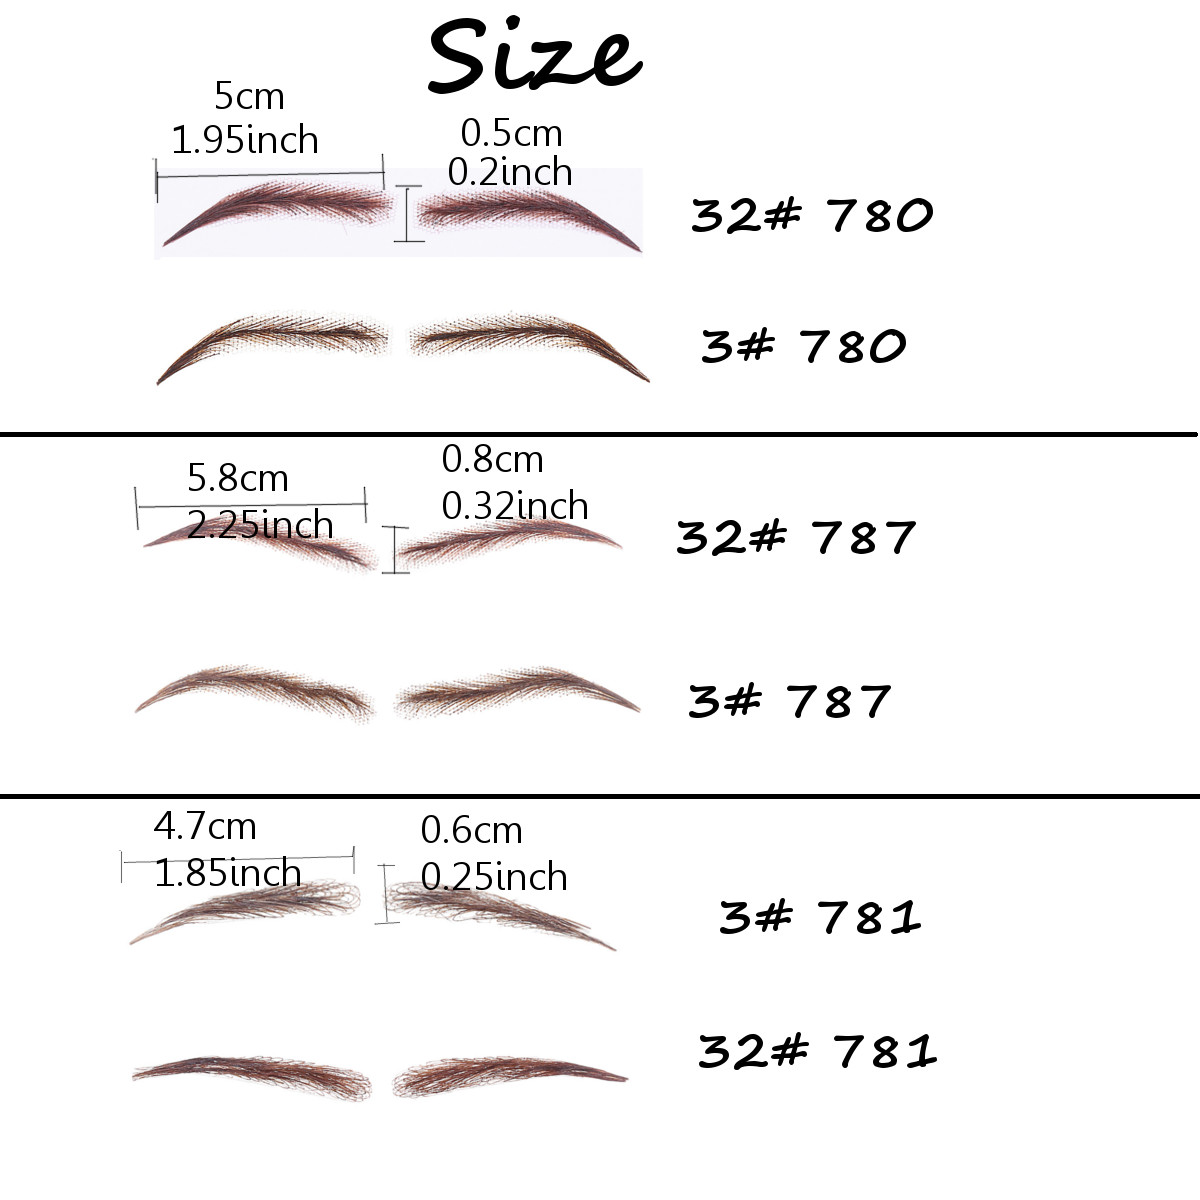 Image 2 - Handmade Human Hair False Eyebrows Lace Base For Women For Party Wedding Cosplay Star Fake Eyebrow Synthetic Eyebrows-in Eyebrow Enhancers from Beauty & Health